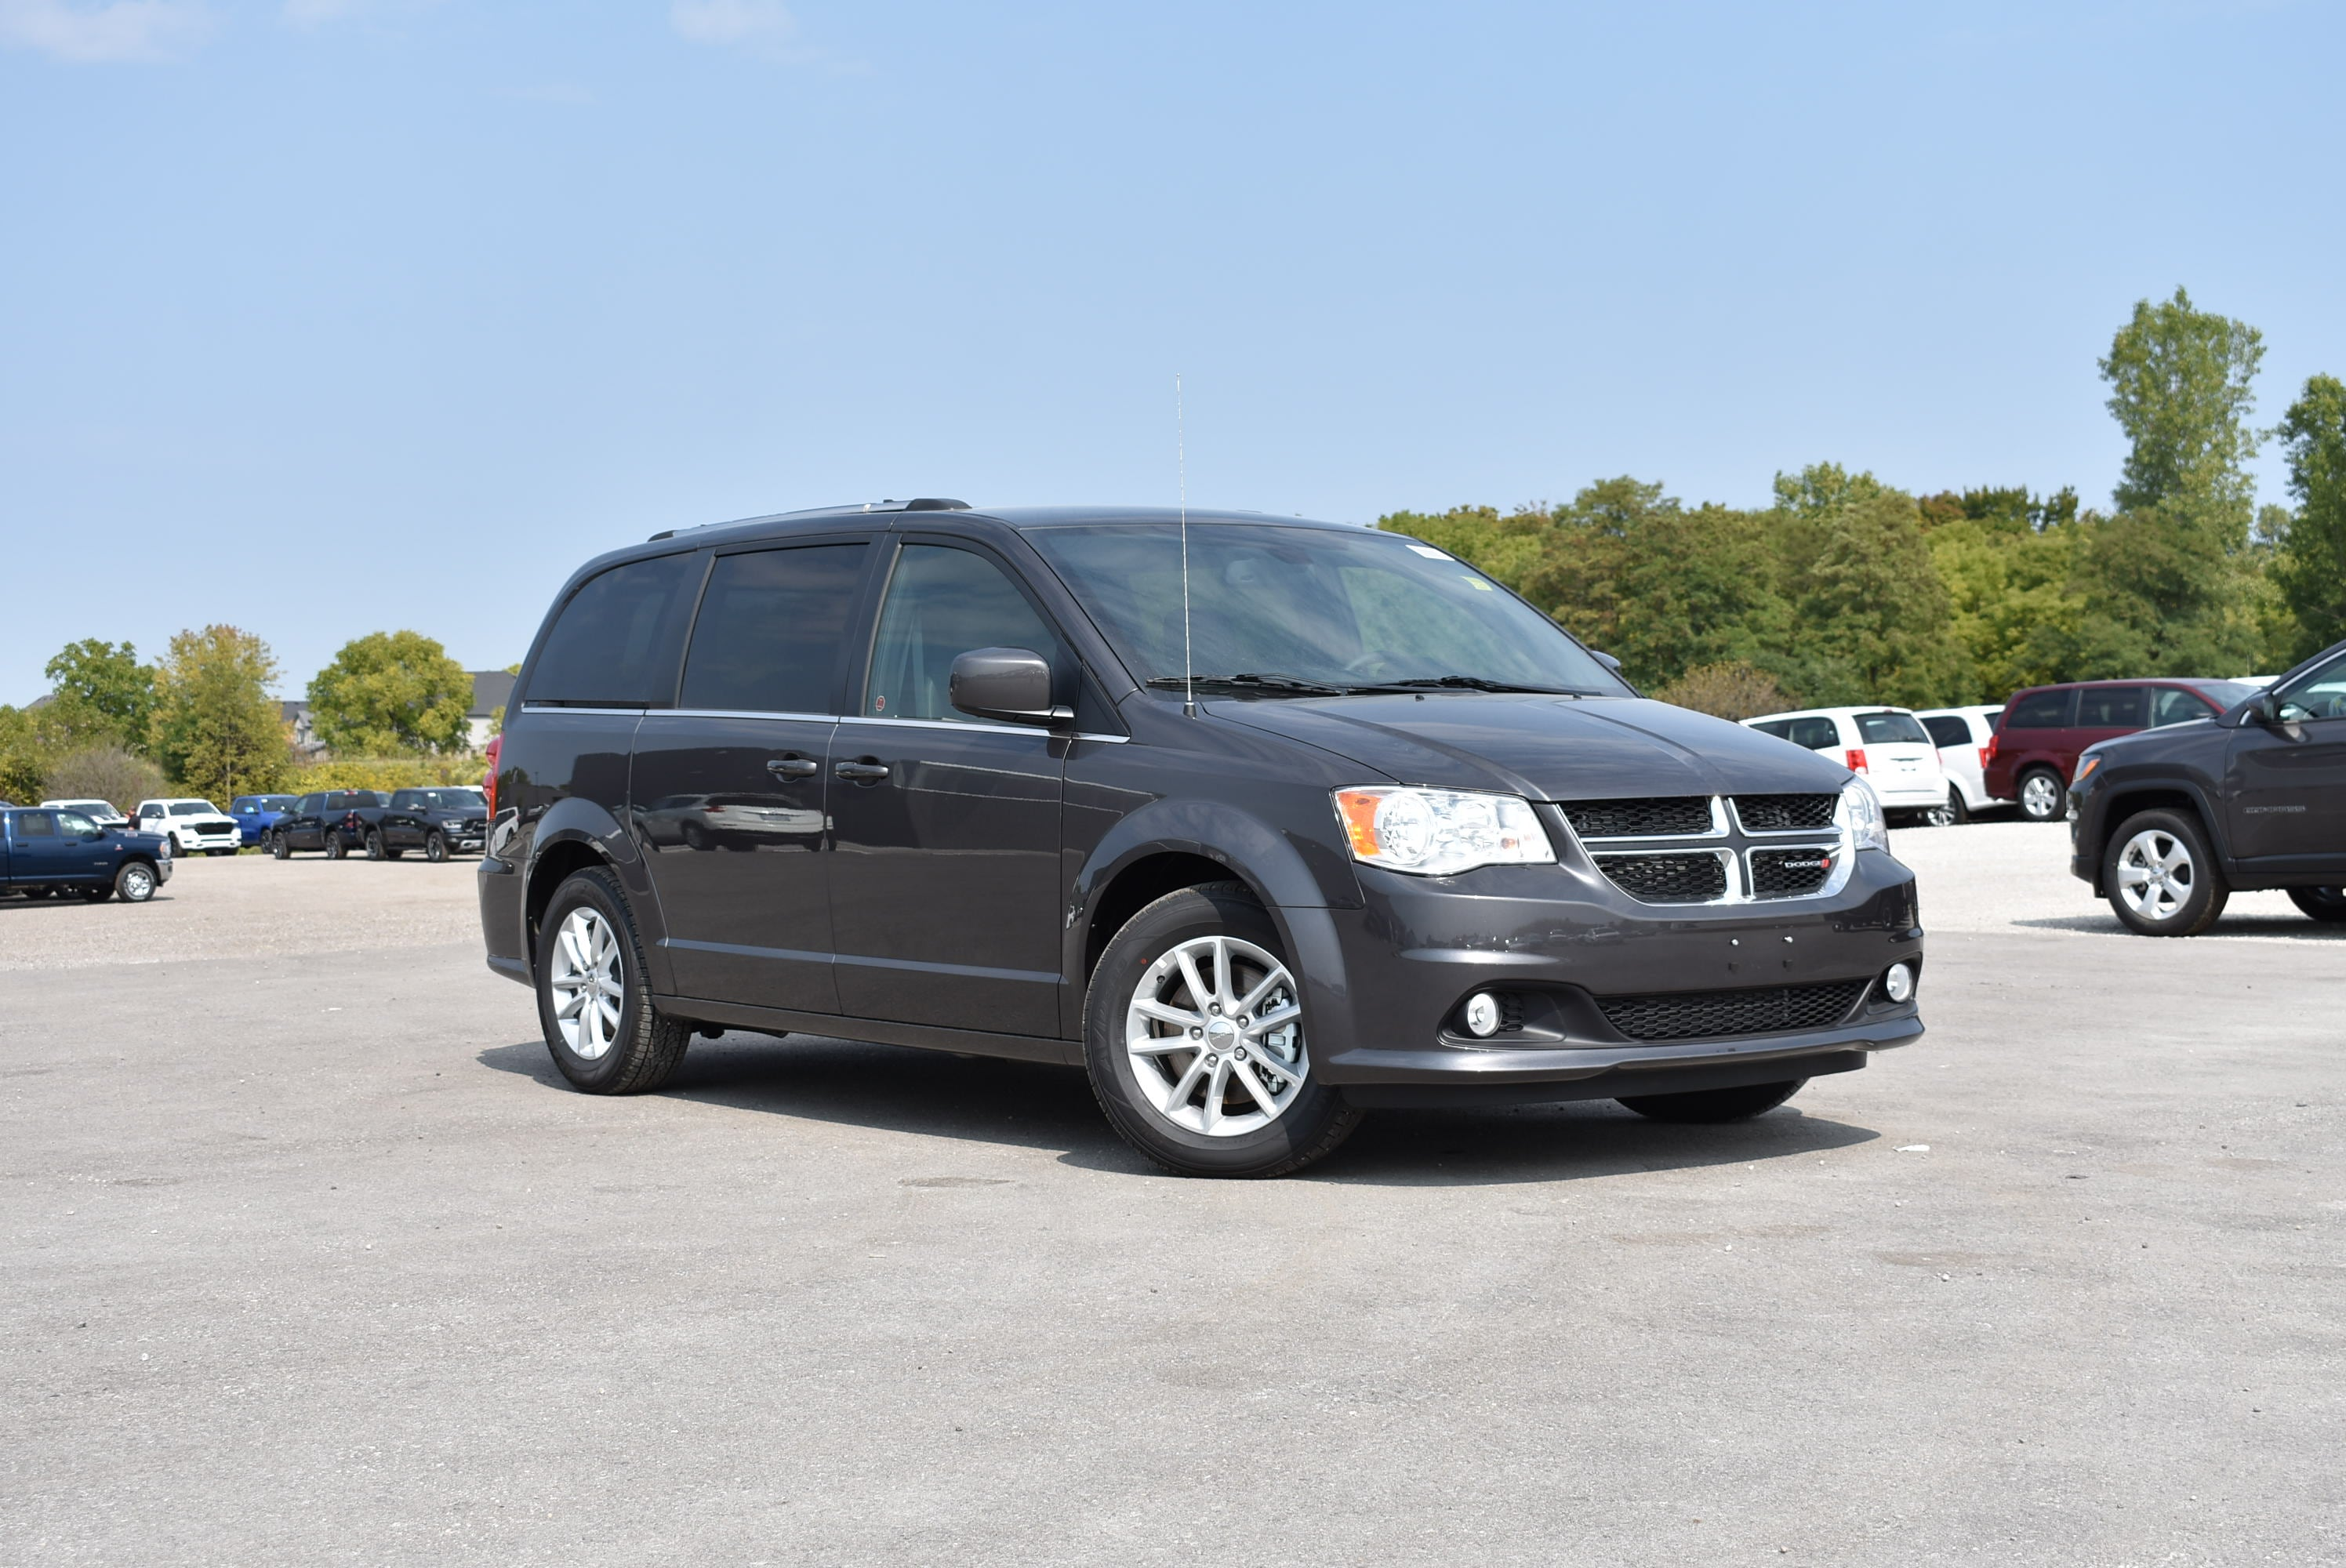 new 2020 Dodge Grand Caravan car, priced at $35,977